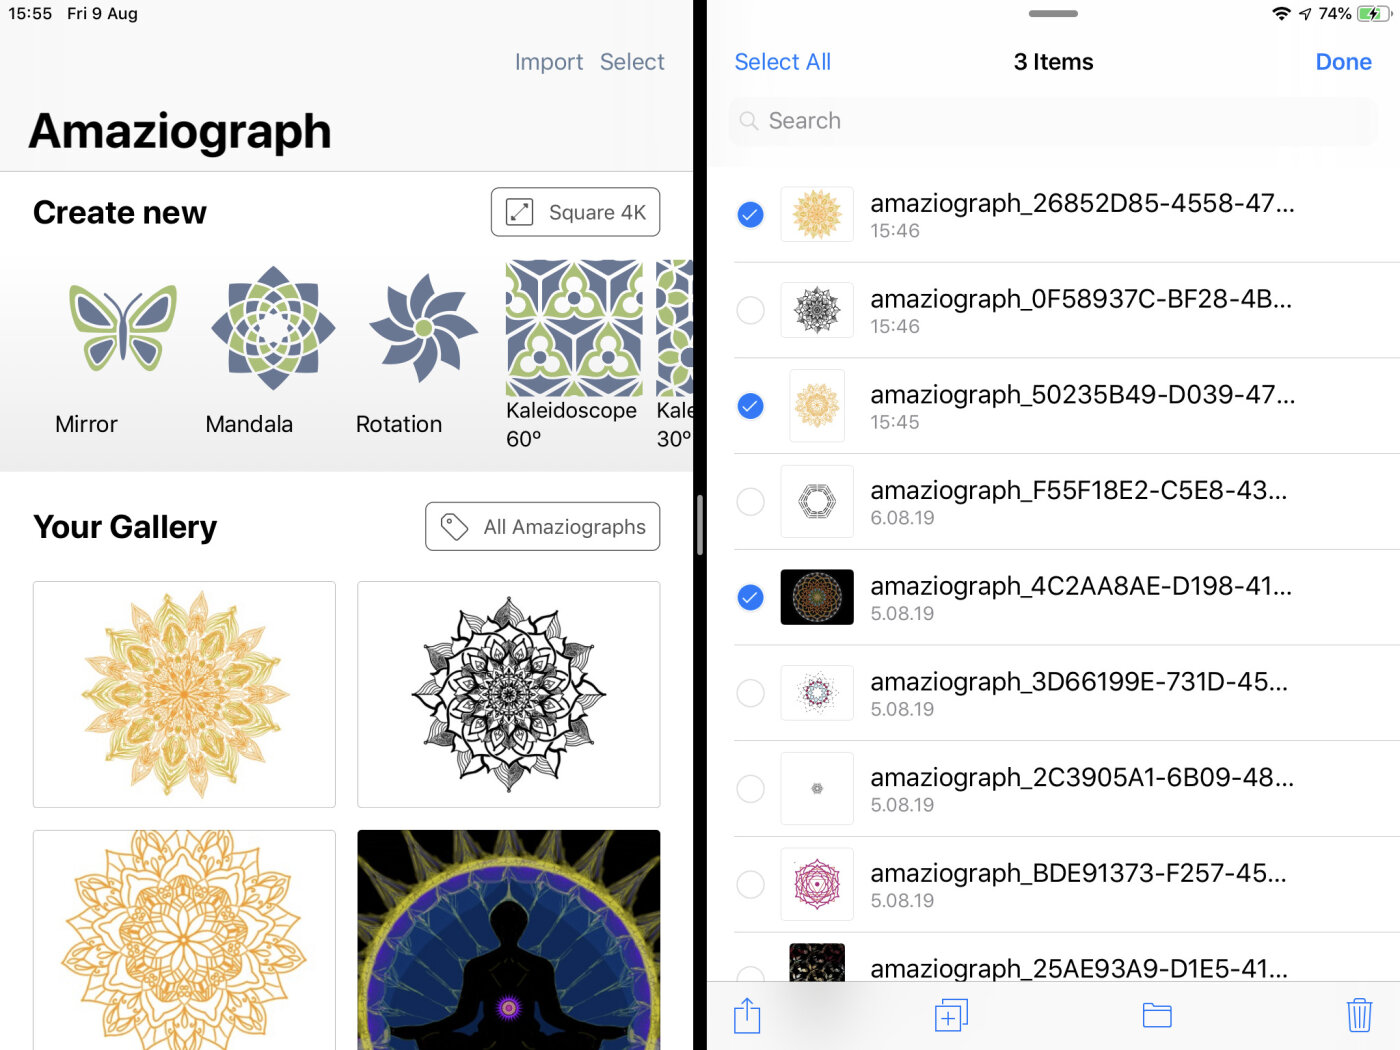 Open Files on your iPad and copy Amaziograph files.